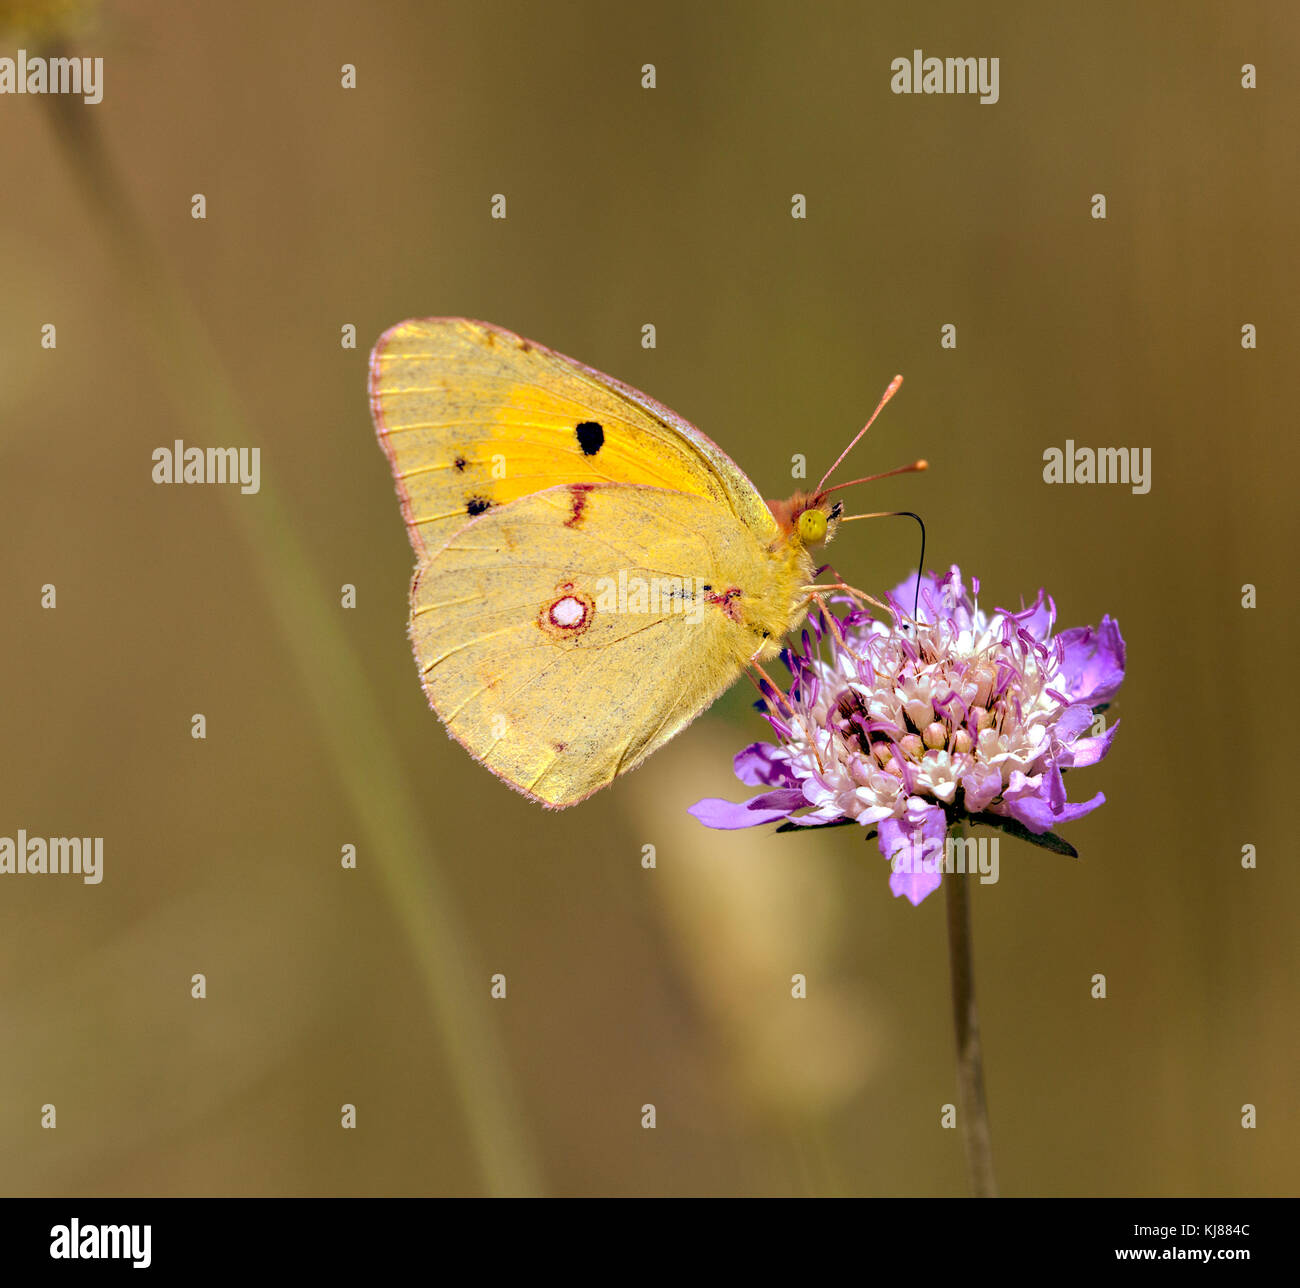 Clouded yellow butterfly basking in the sun on a flowerhead at Riaza in central Spain - Stock Image